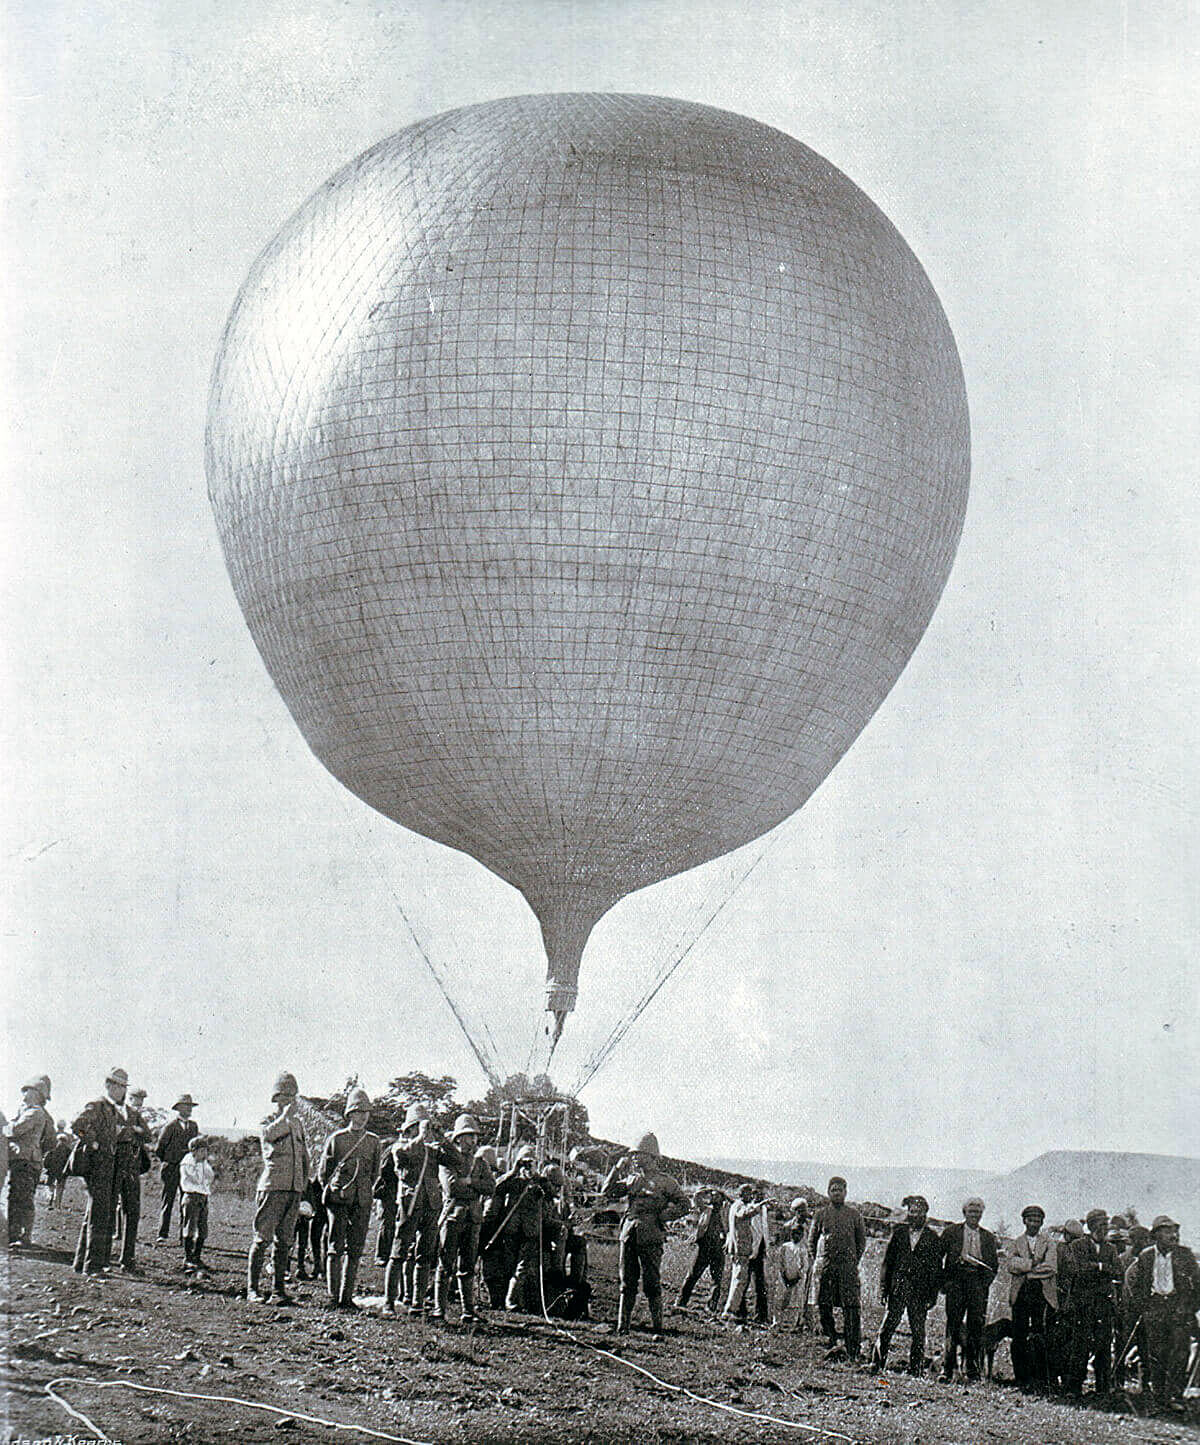 Royal Engineers' Balloon in Ladysmith 1899 to 1900 in the Boer War